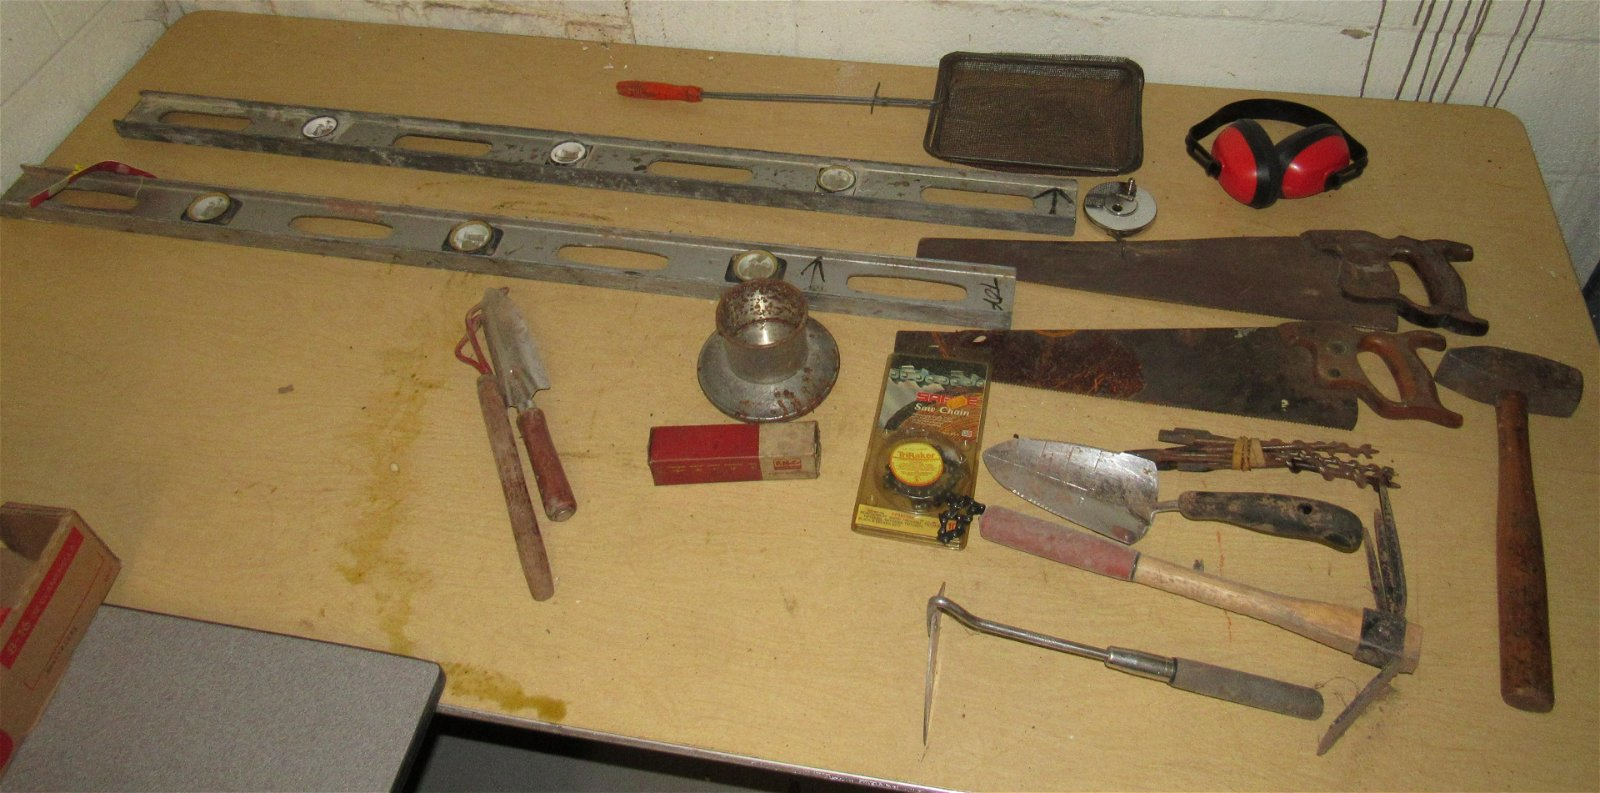 Hammer Disston Hand Saws Tools Table Contents